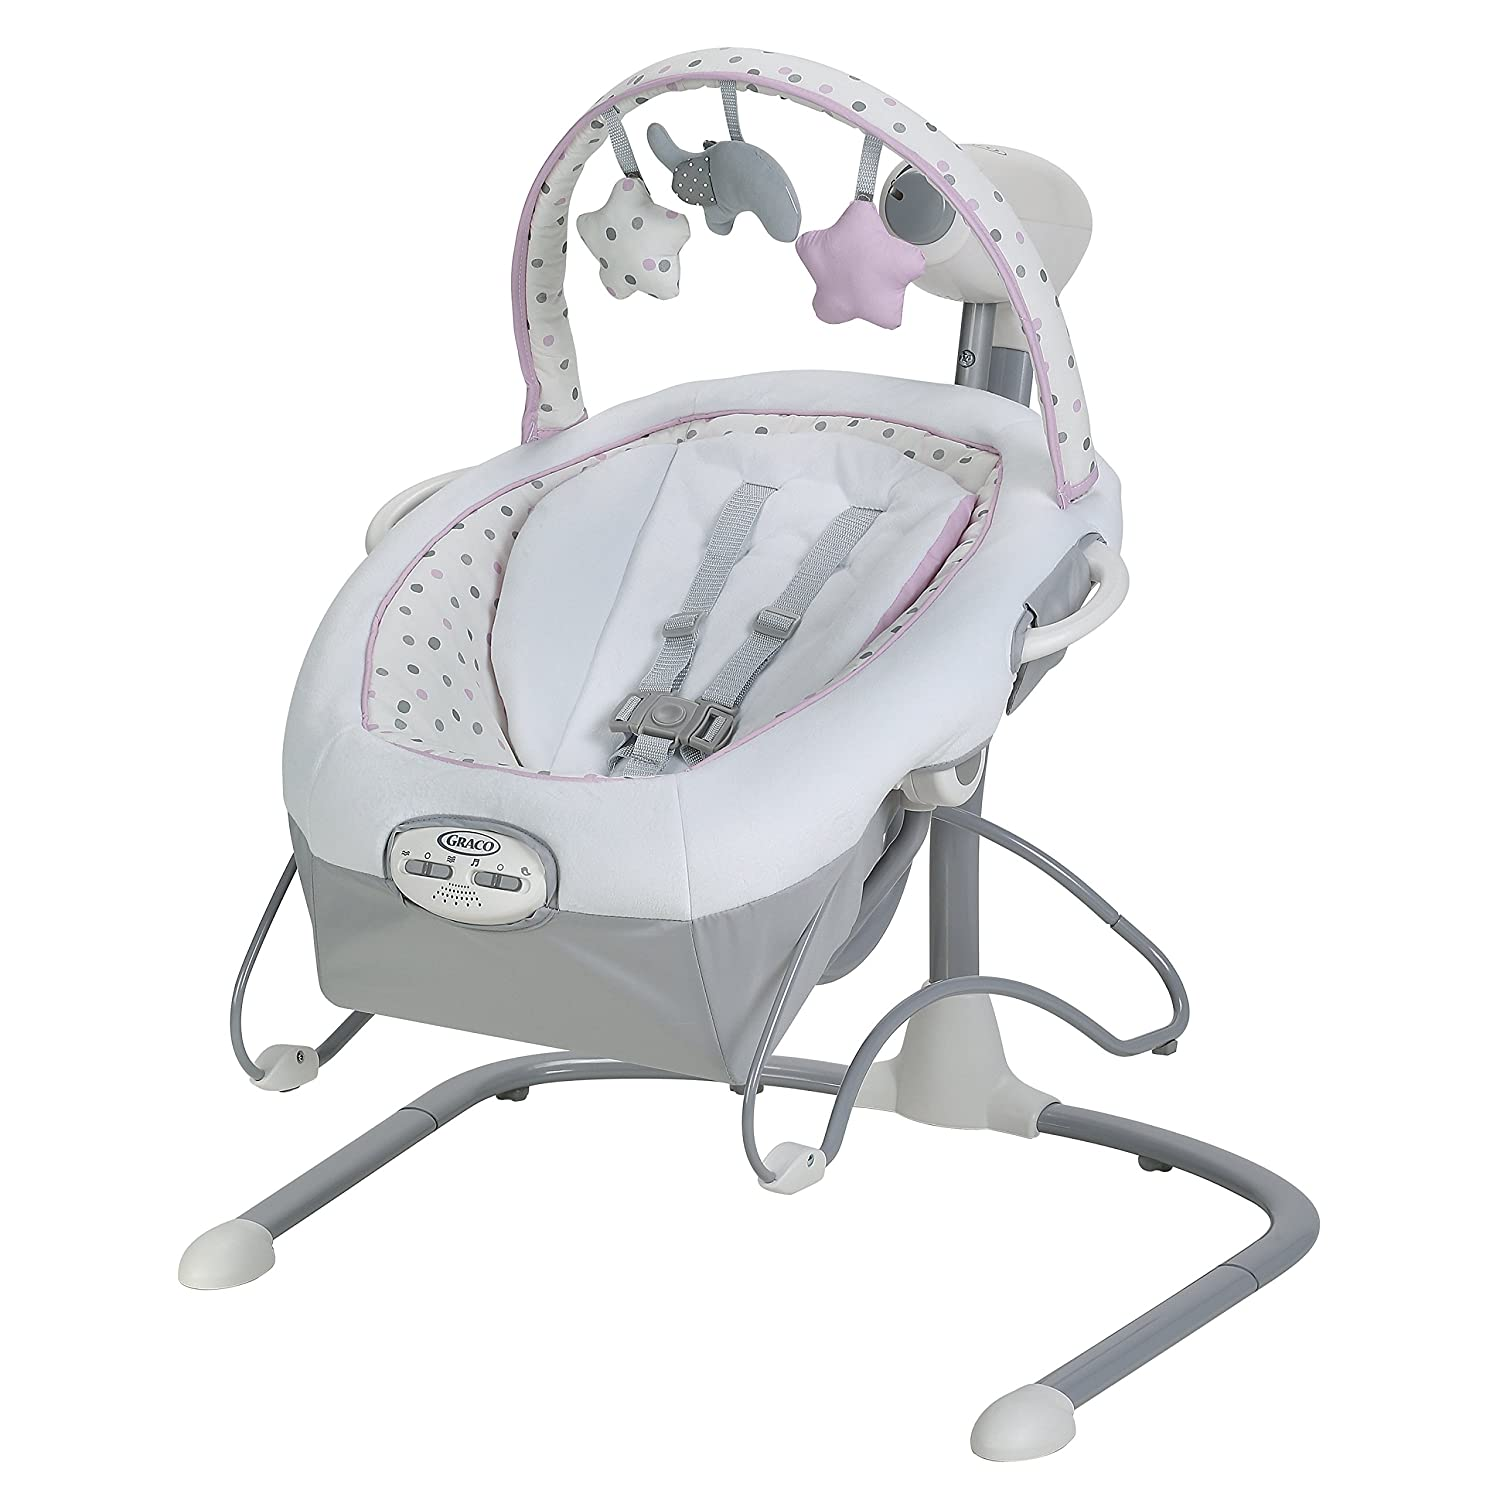 Graco Duet Sway LX Swing with Portable Bouncer, Camila Graco Baby 2035665